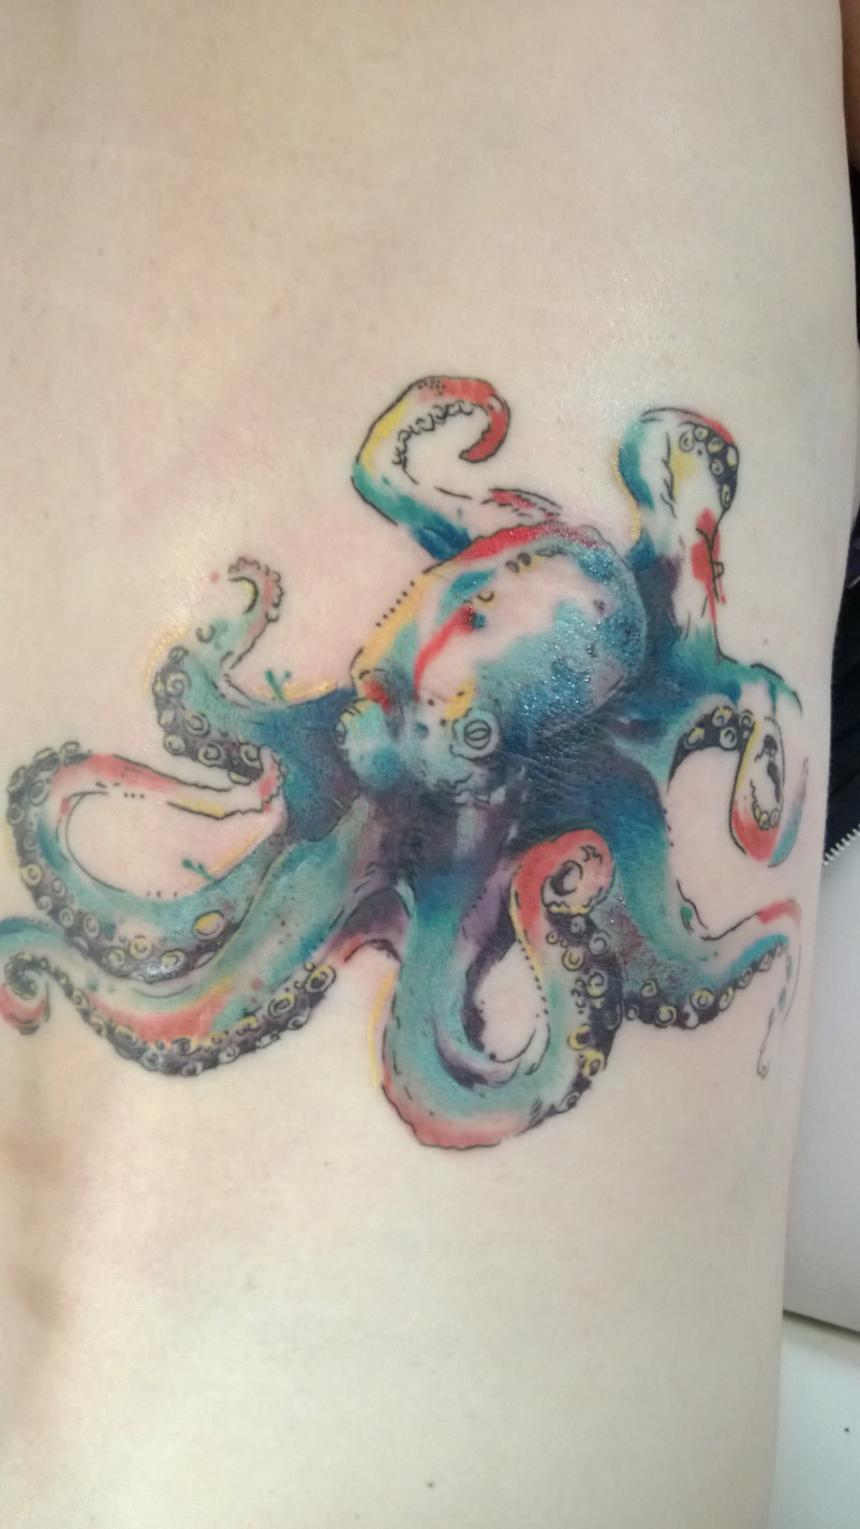 43 small octopus tattoos collection. Black Bedroom Furniture Sets. Home Design Ideas